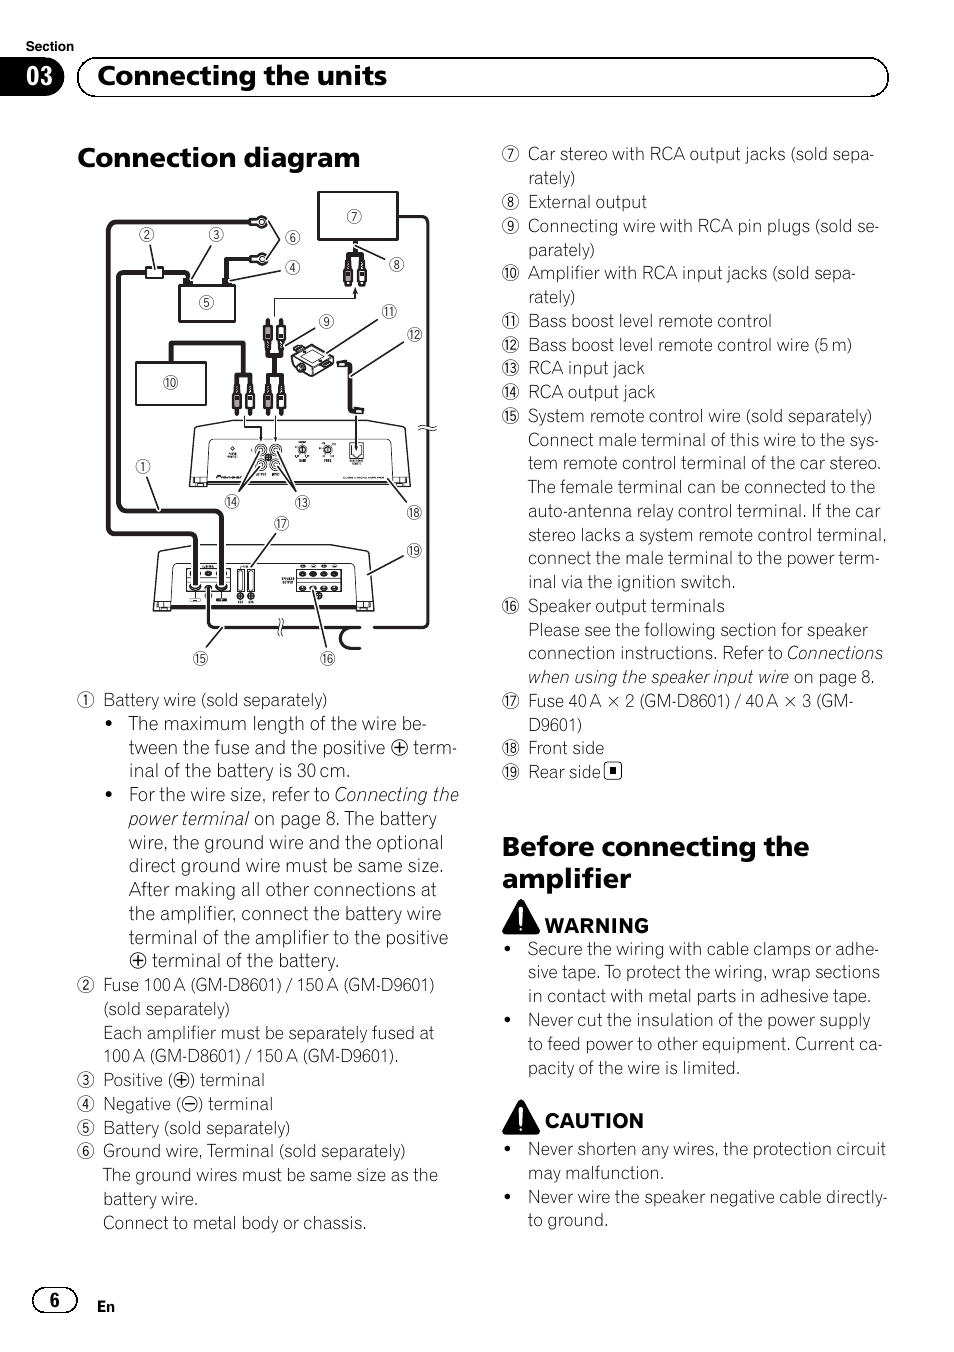 pioneer gm d8601 page6 connection diagram, before connecting the amplifier, 03 connecting pioneer gm-d9601 wiring diagram at bayanpartner.co